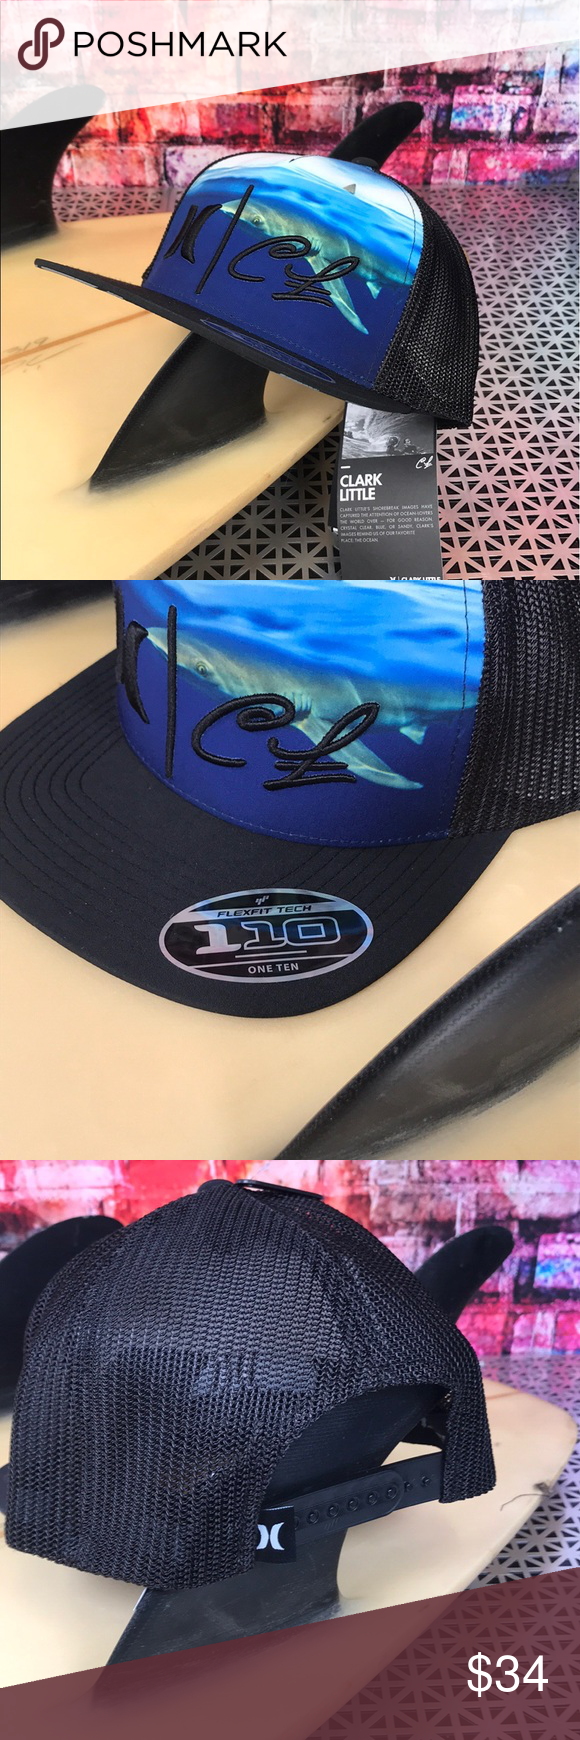 01dc4011293 🦈Hurley Clark Week 🦈 Sick Hurley Clark Little Shark Snap Back 🦈  Featuring a sublimated